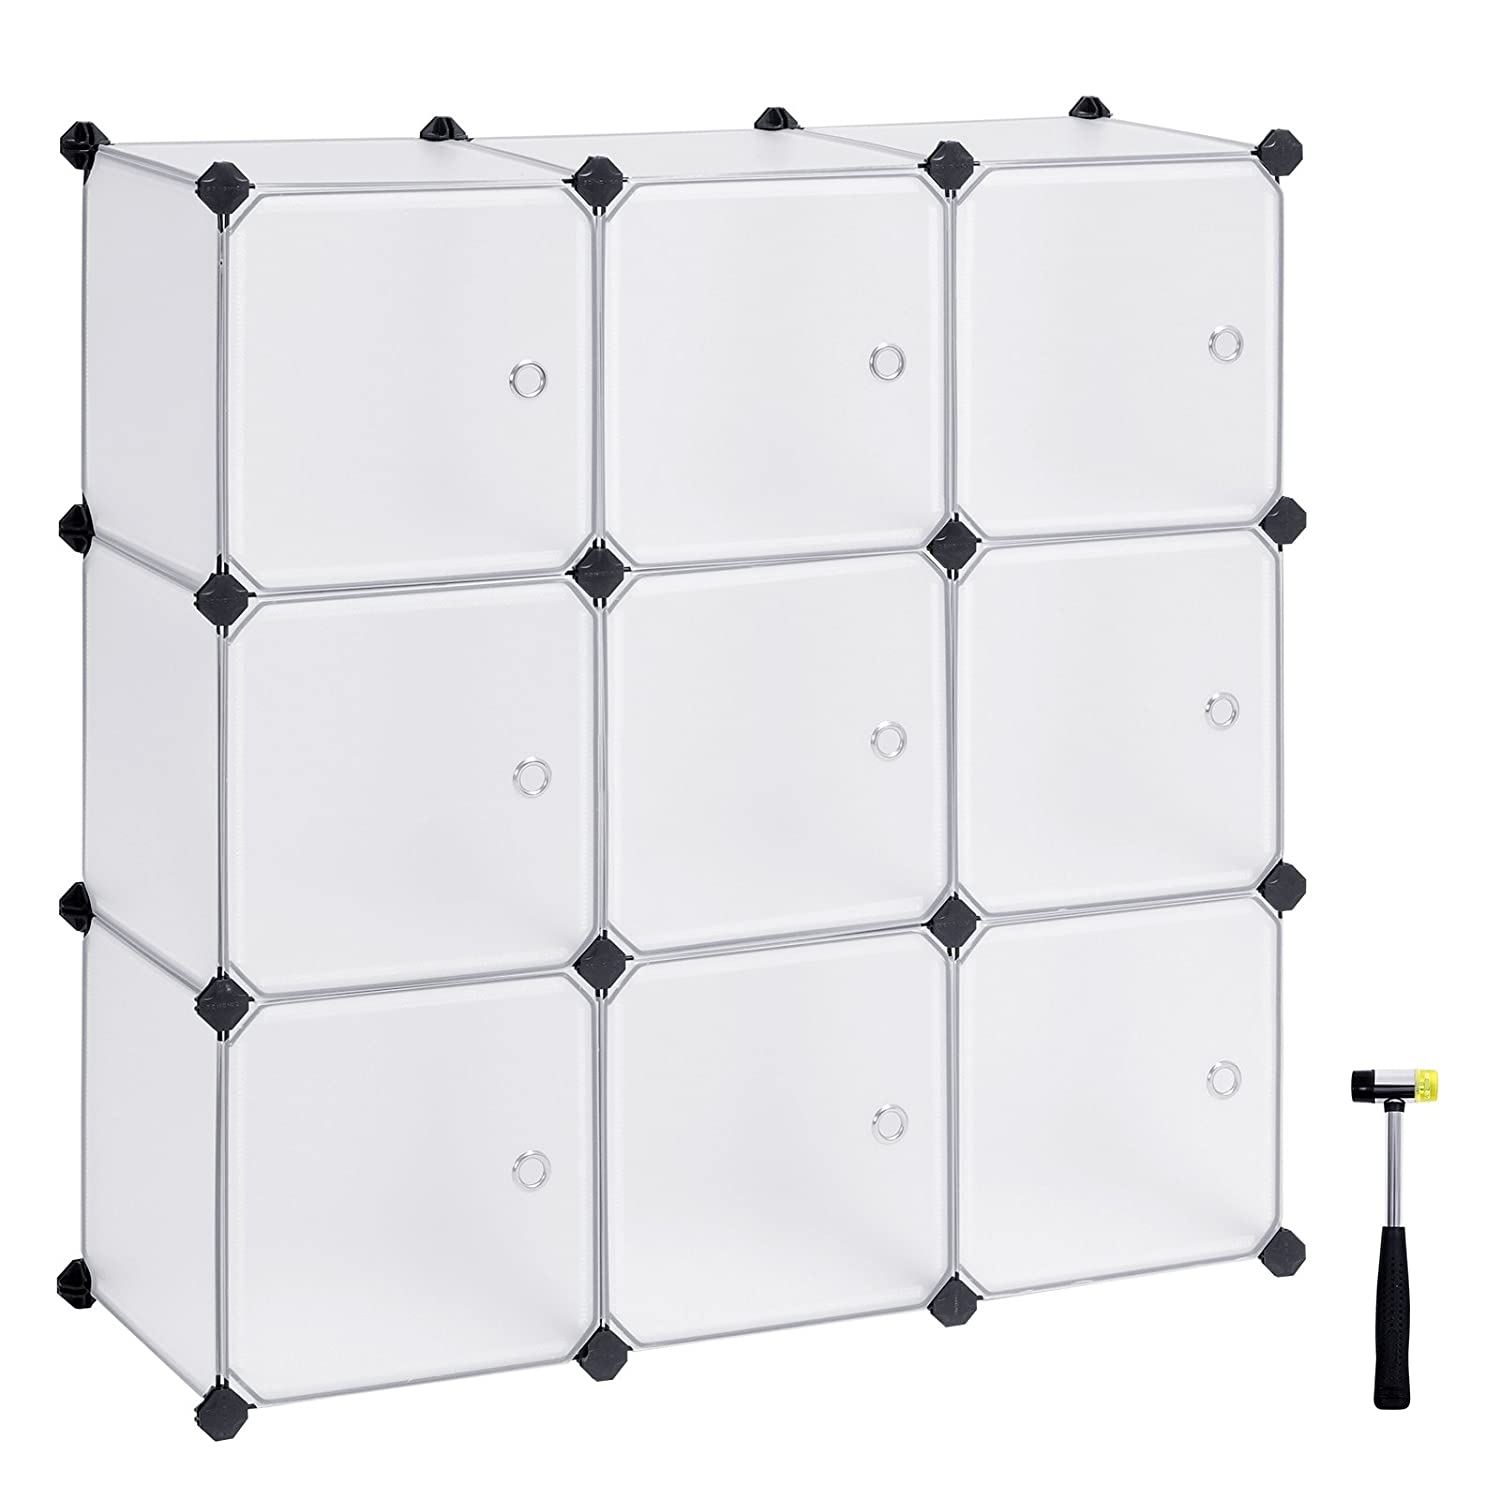 SONGMICS Cube Storage, DIY Plastic Cube Organizer Units, Modular Closet Cabinet with Doors for Clothes, Shoes, Toys, Book for Bedroom, Living Room,Office, with Rubber Mallet White 9-Cube ULPC116WS